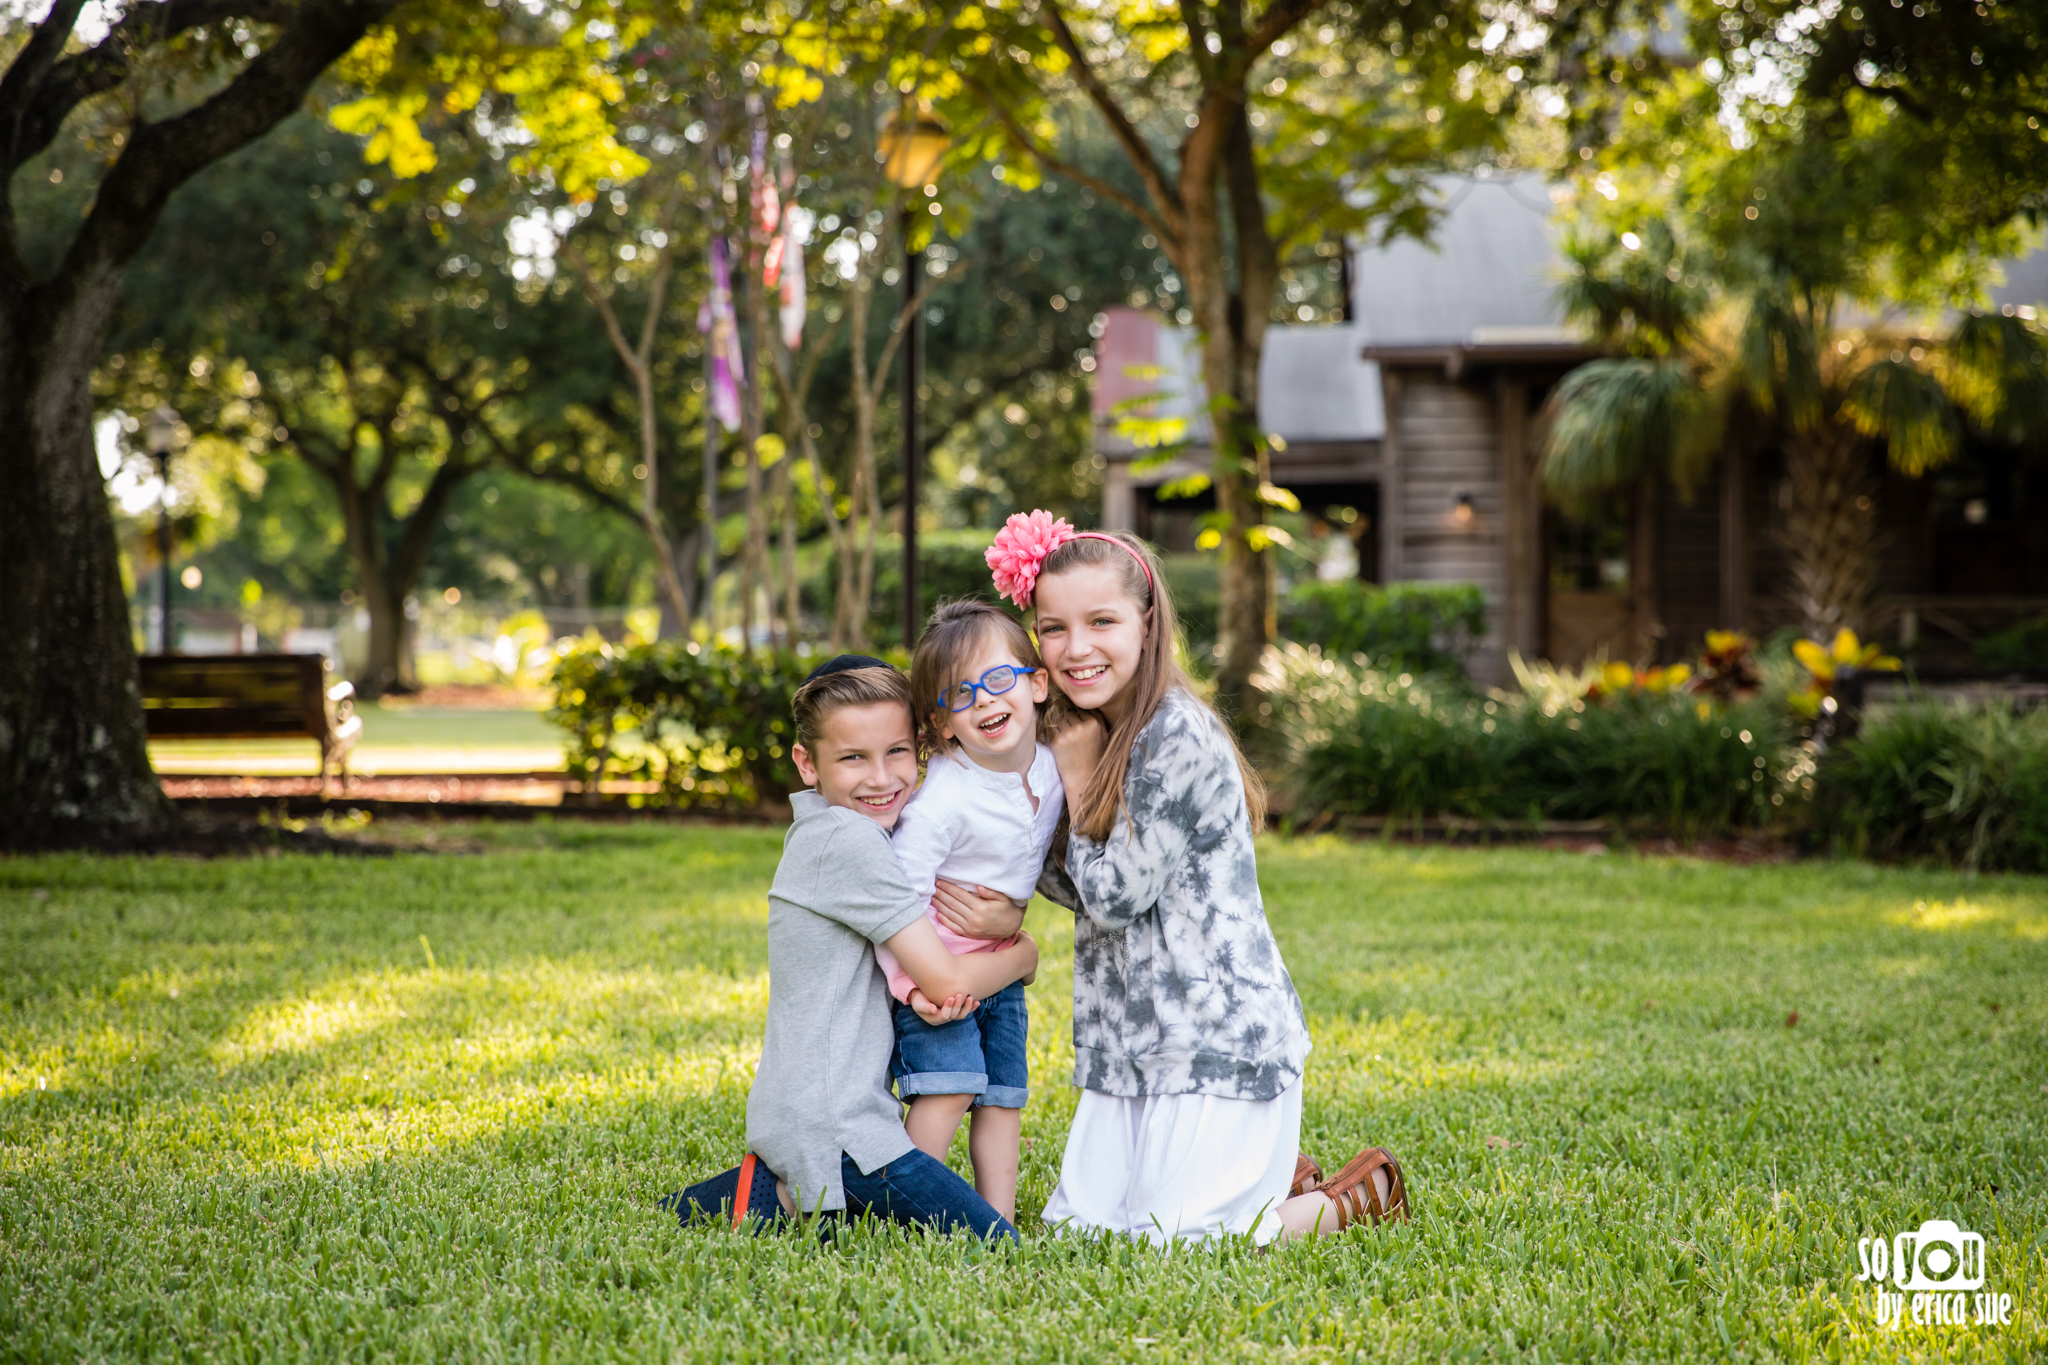 so-you-by-erica-sue-lifestyle-family-photography-ft-lauderdale-fl-7411.jpg